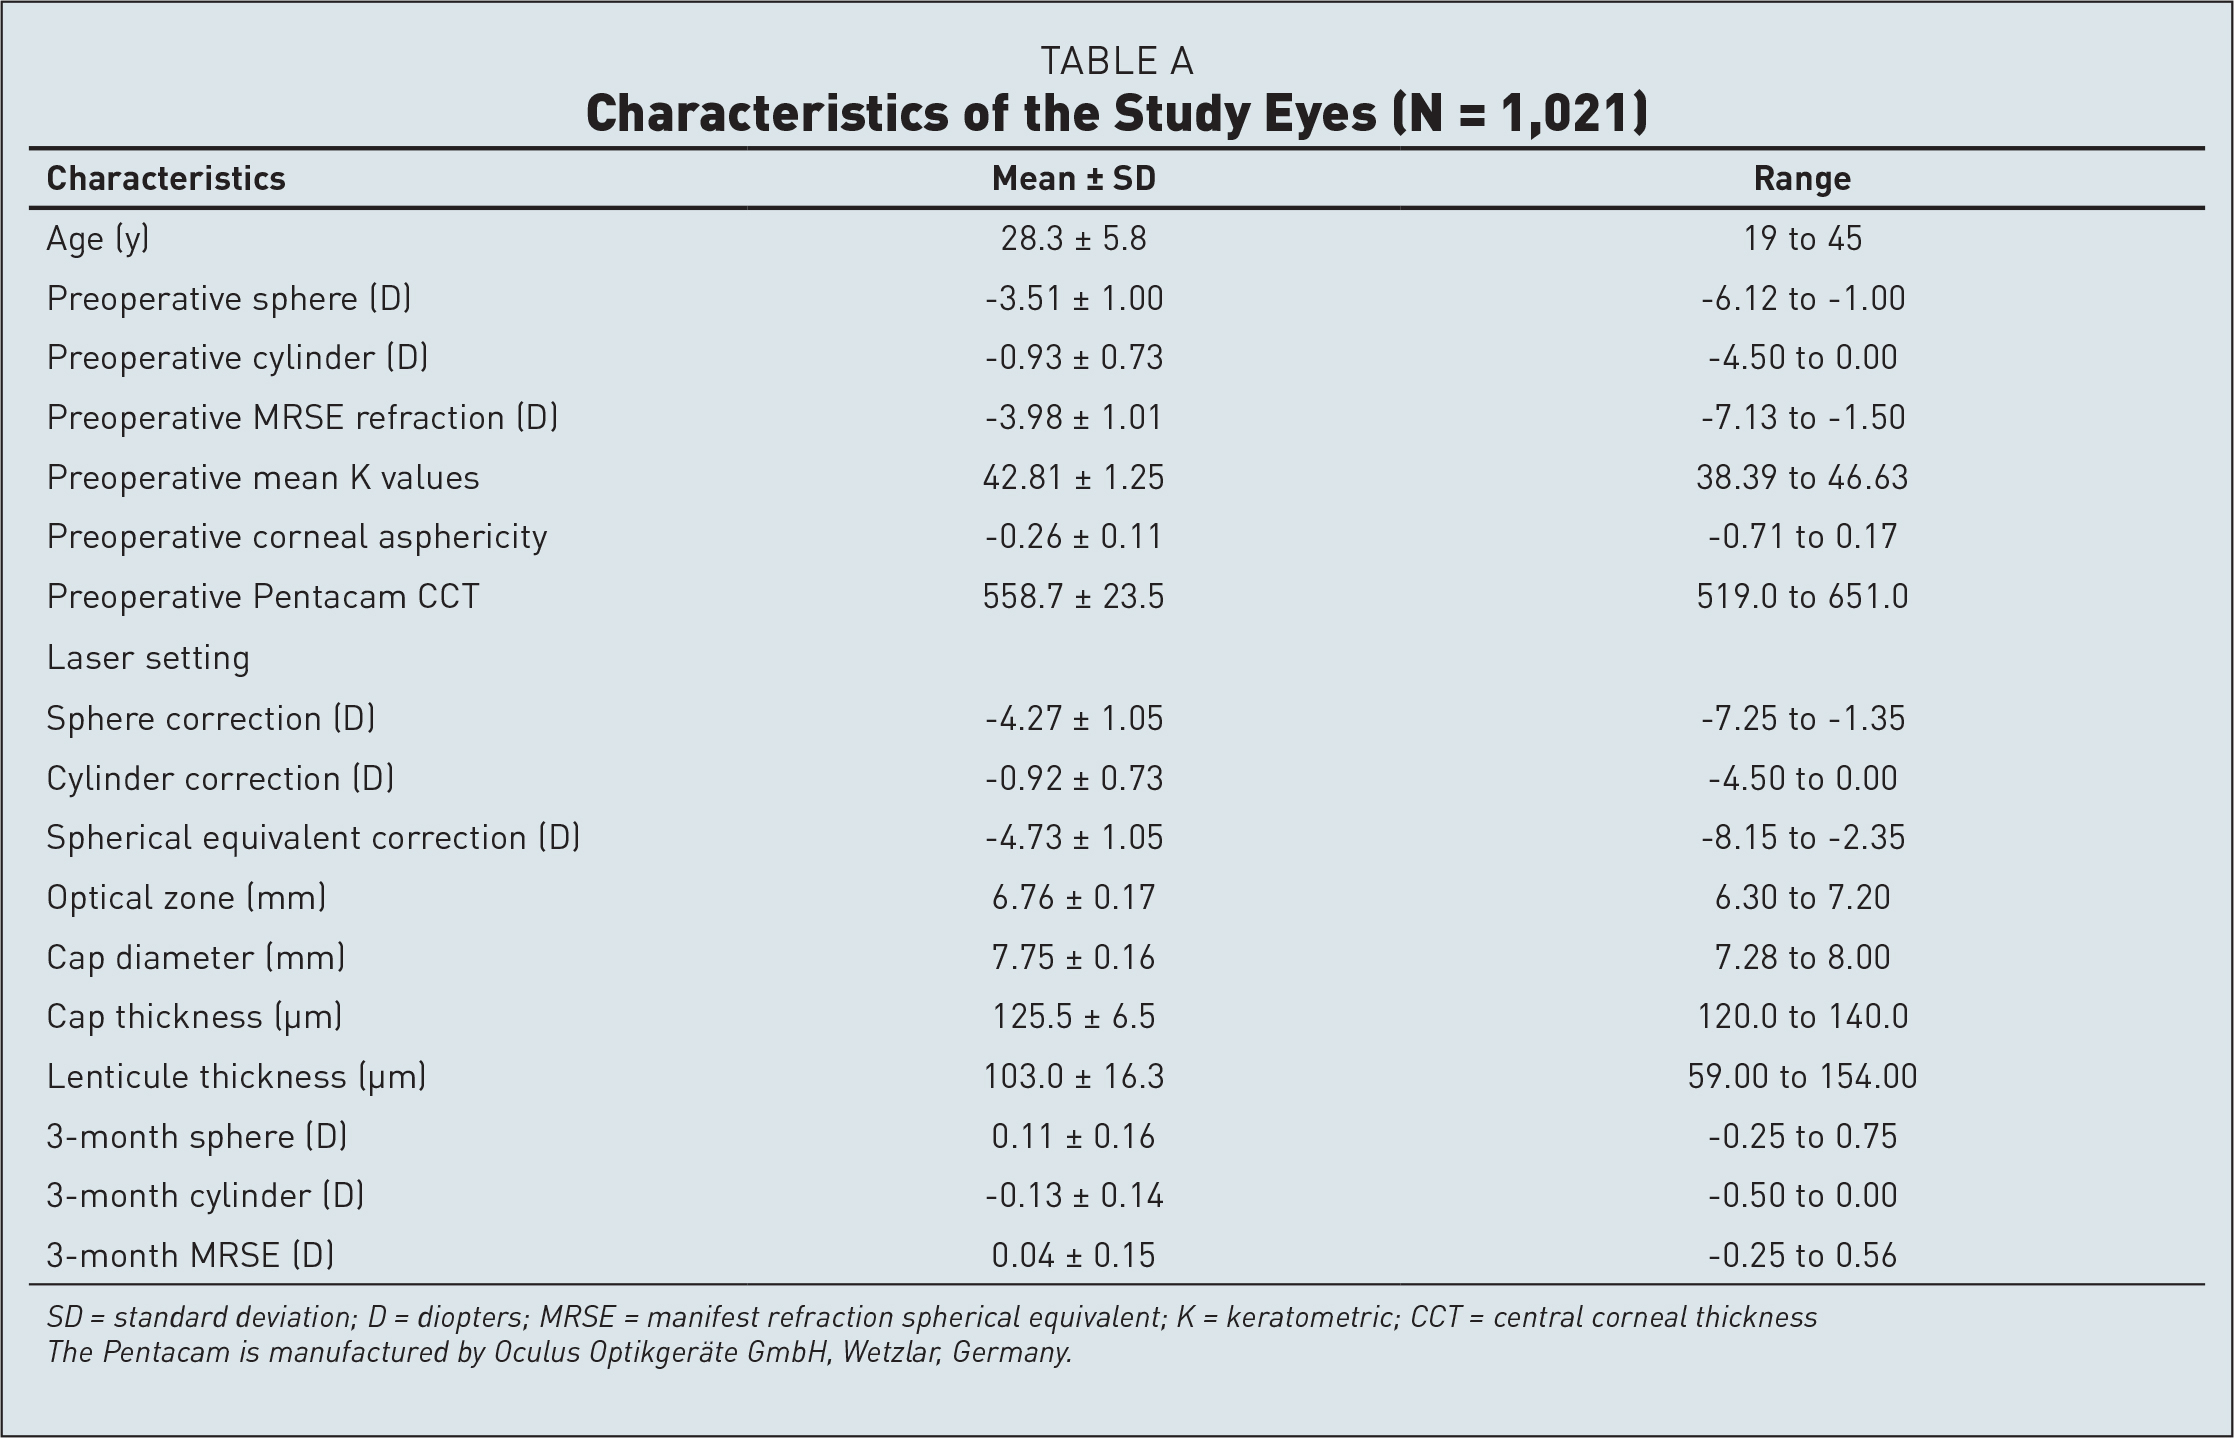 Characteristics of the Study Eyes (N = 1,021)